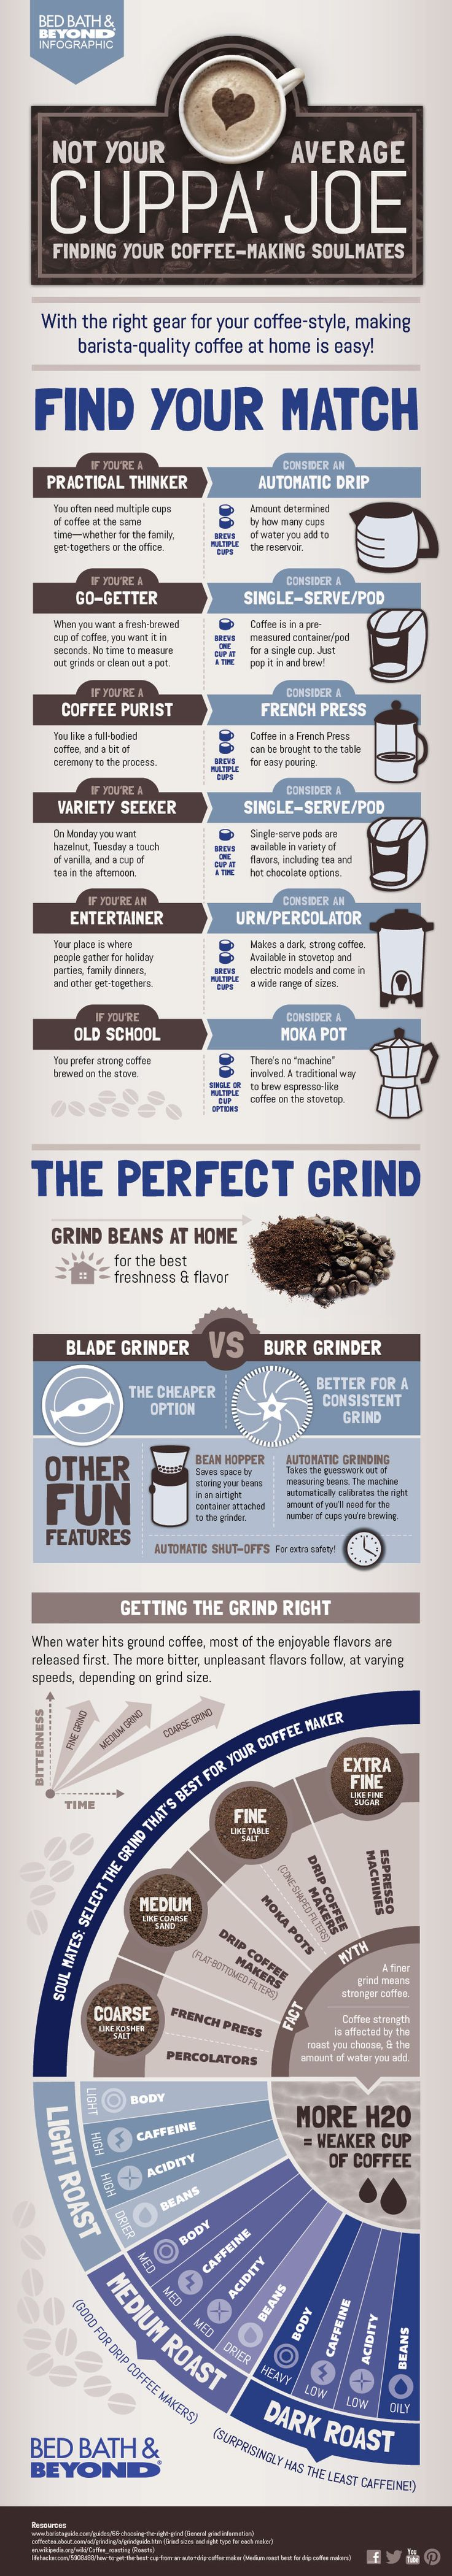 Bed bath beyond french press - What Kind Of Coffee Person Are You Find Out More With This Infographic